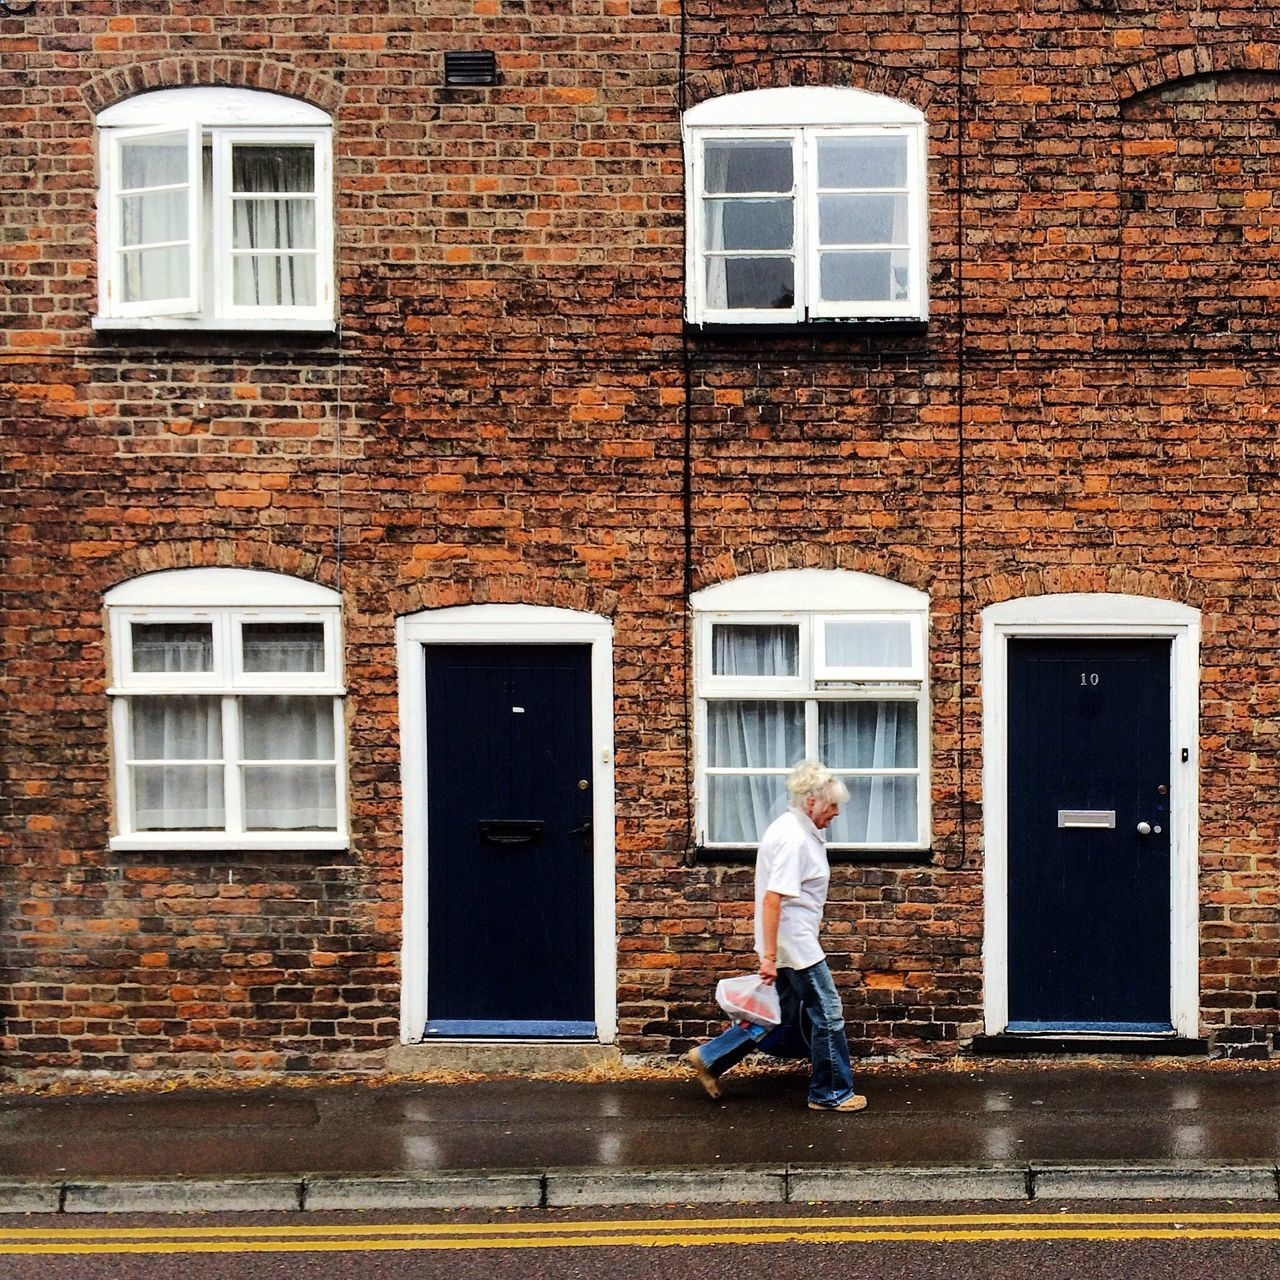 Gloucester Pitt Sreet Woman Street Walking Streetphotography Building Architecture Brick Wall Façade